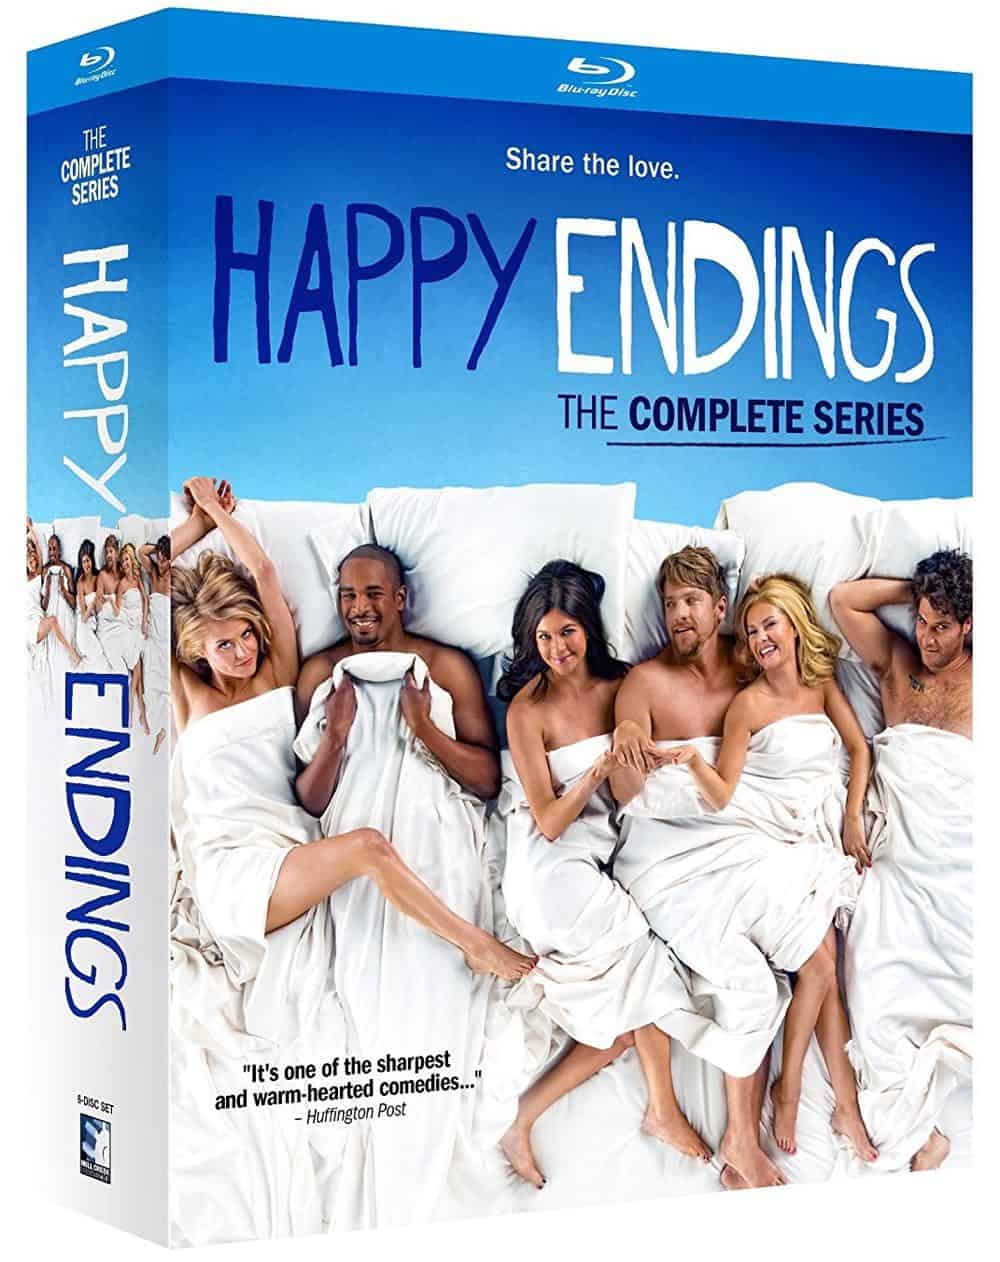 Happy-Endings-The-Complete-Series-Bluray